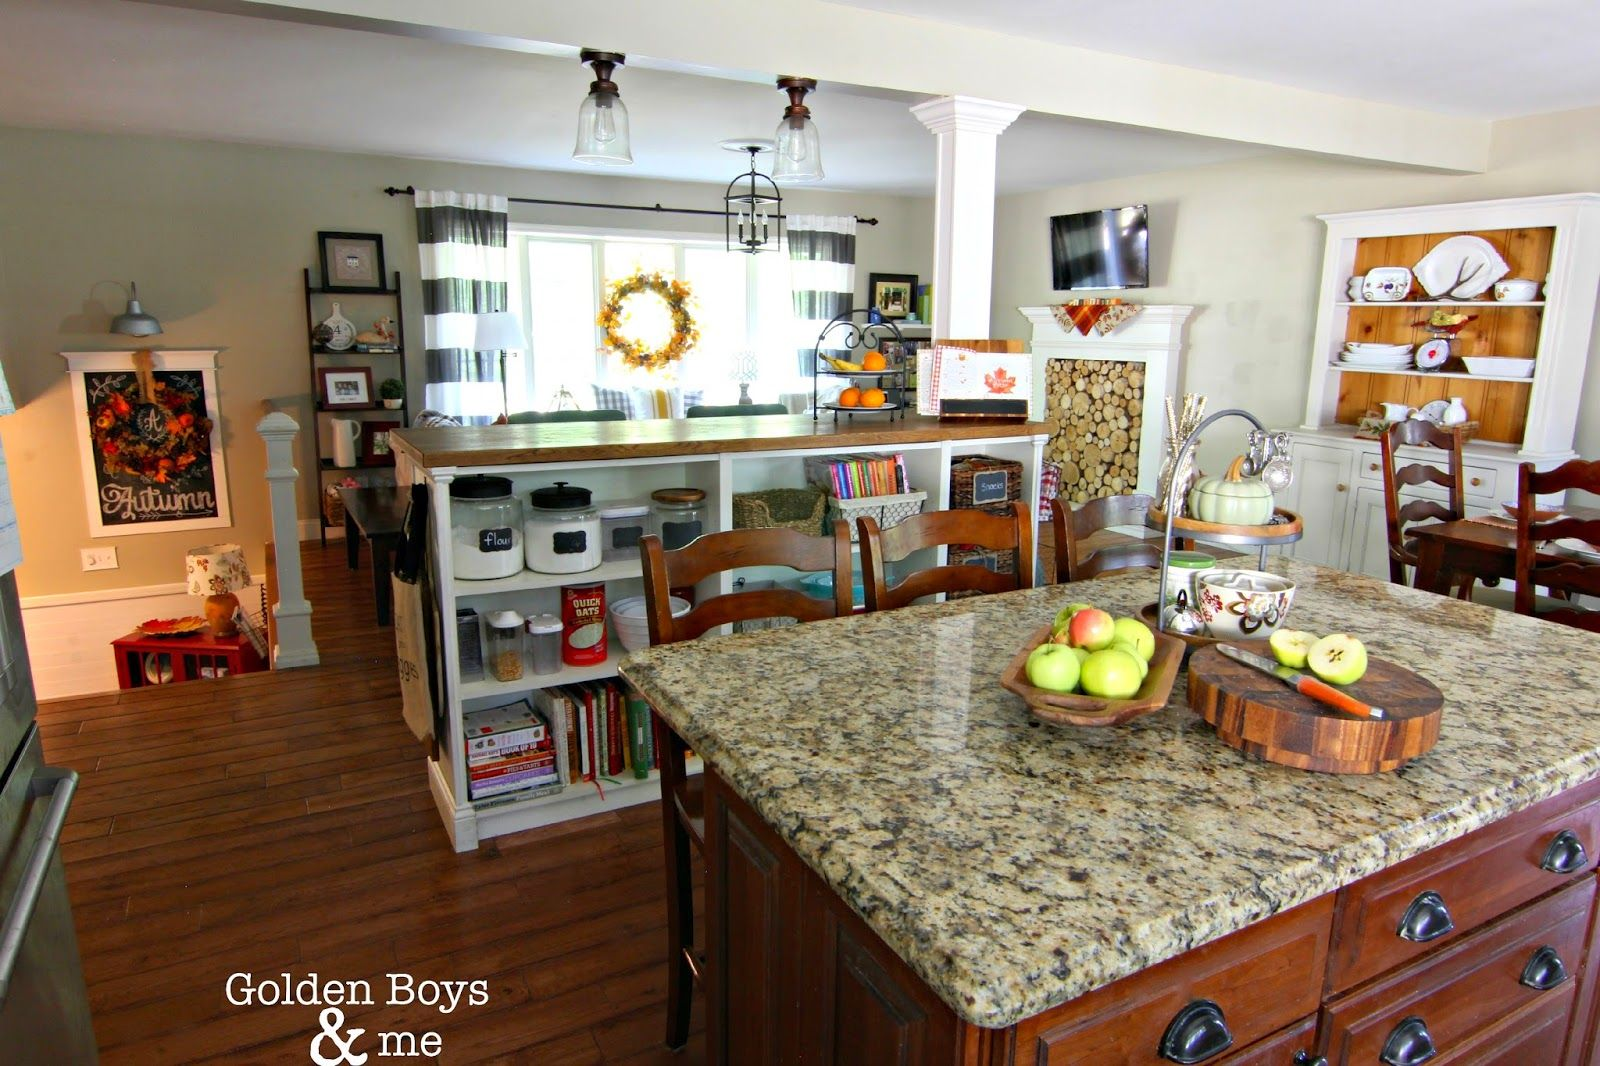 Golden Boys and Me | Living room kitchen, Kitchen living ...